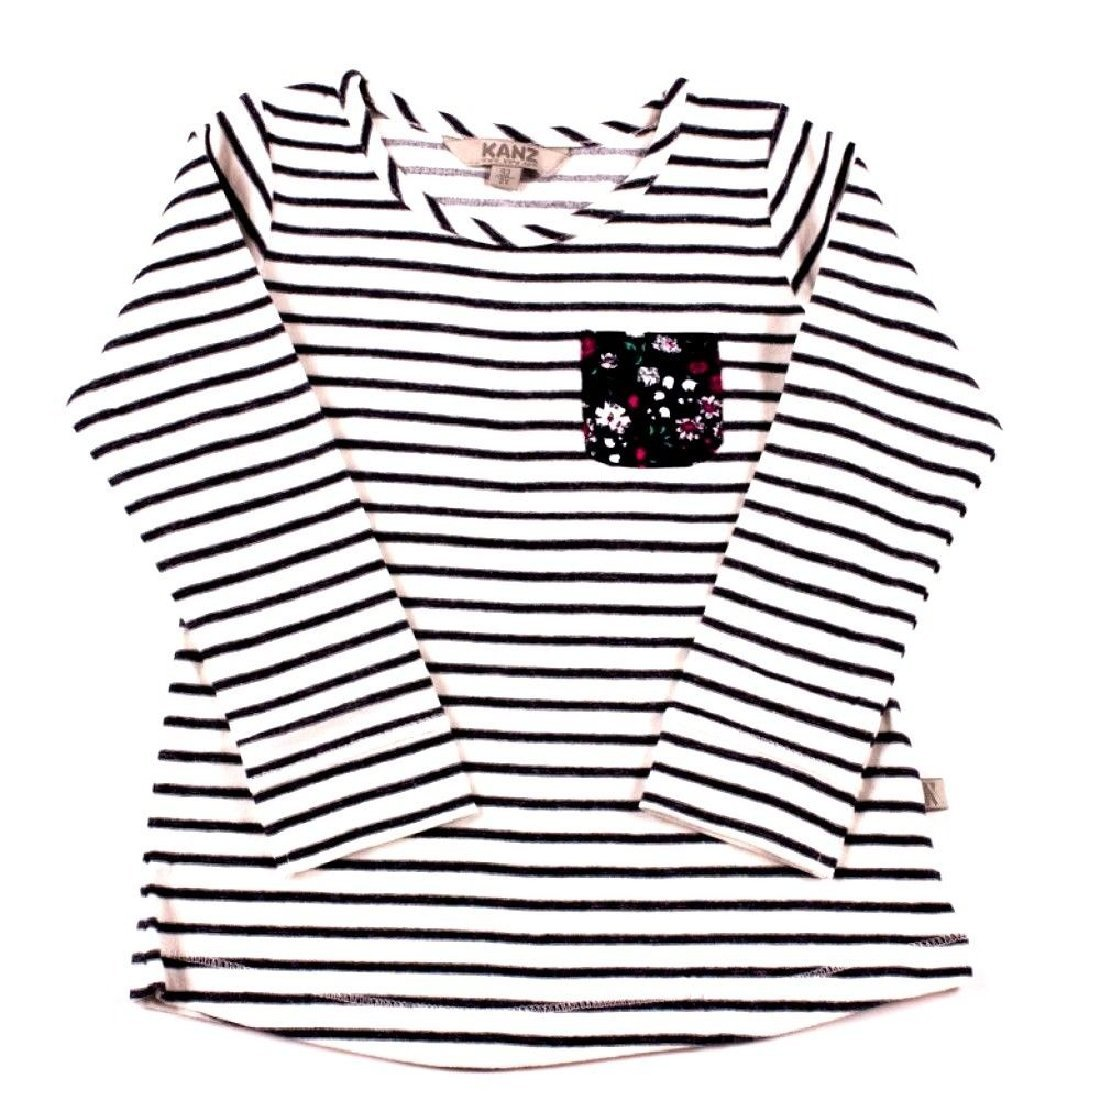 Girls Striped White Shirt with Floral Pocket by Kanz Size 4 Years